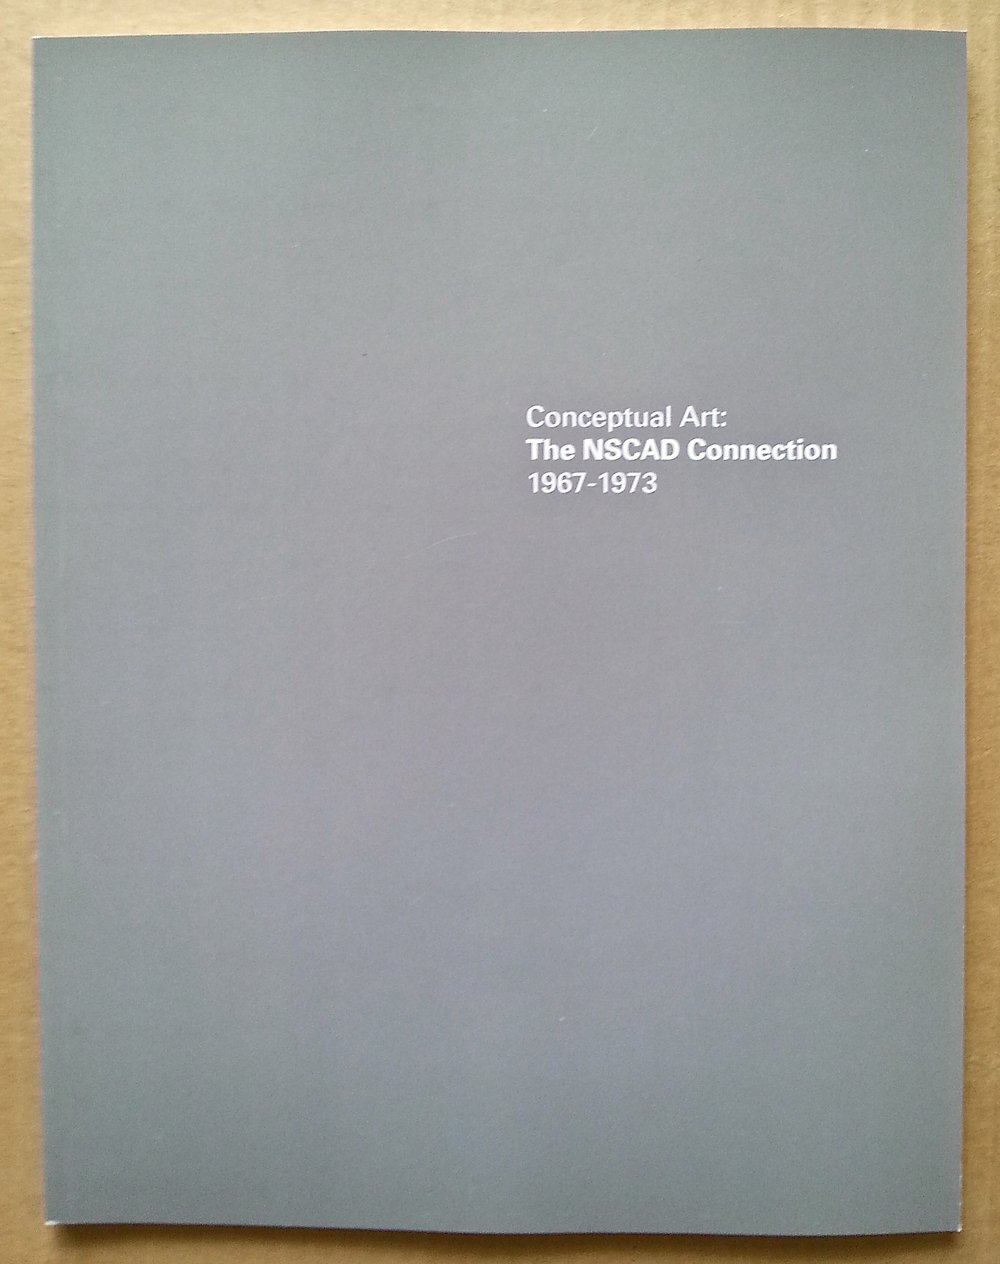 Conceptual Art: The NSCAD Connection 1967-1973,Edited by Dr. Bruce Barber, Softcover, 51 pages, 20 bw, 8.5 x 11″, 10.00 CAD, 2 of 5 SOLD